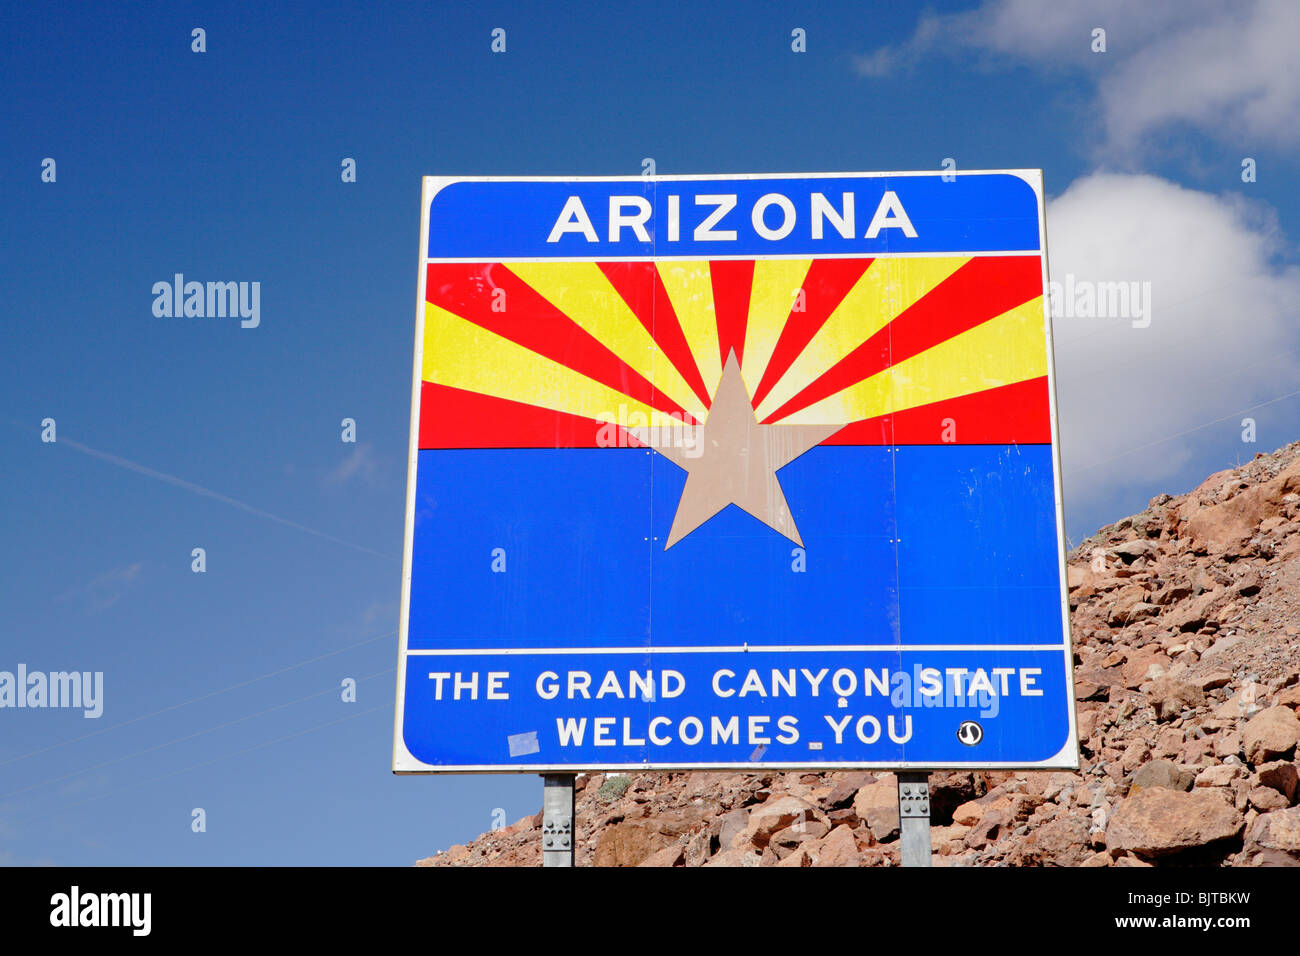 Official state sign of Arizona on the Arizona Nevada border-Hoover Dam Area, Arizona/Nevada, USA. - Stock Image